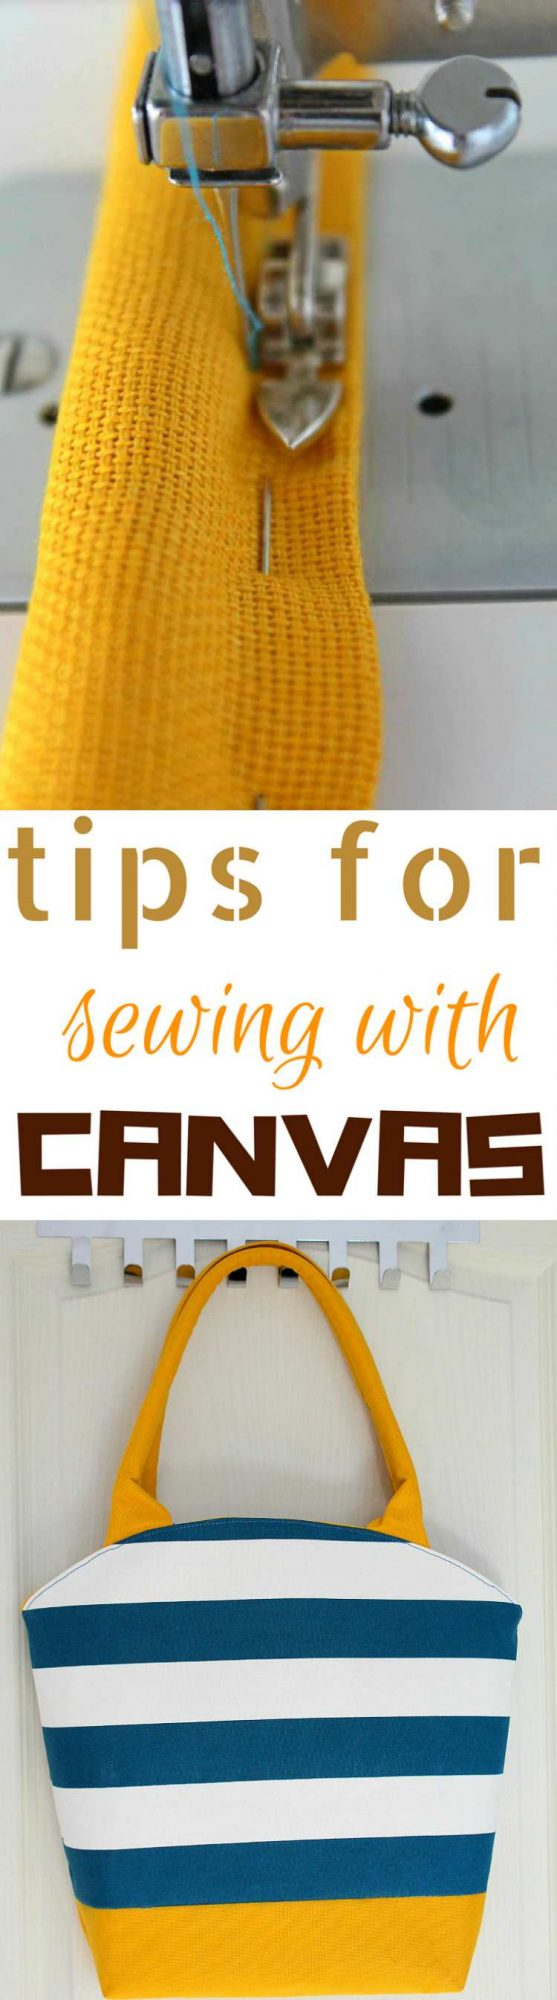 Tips for sewing with canvas